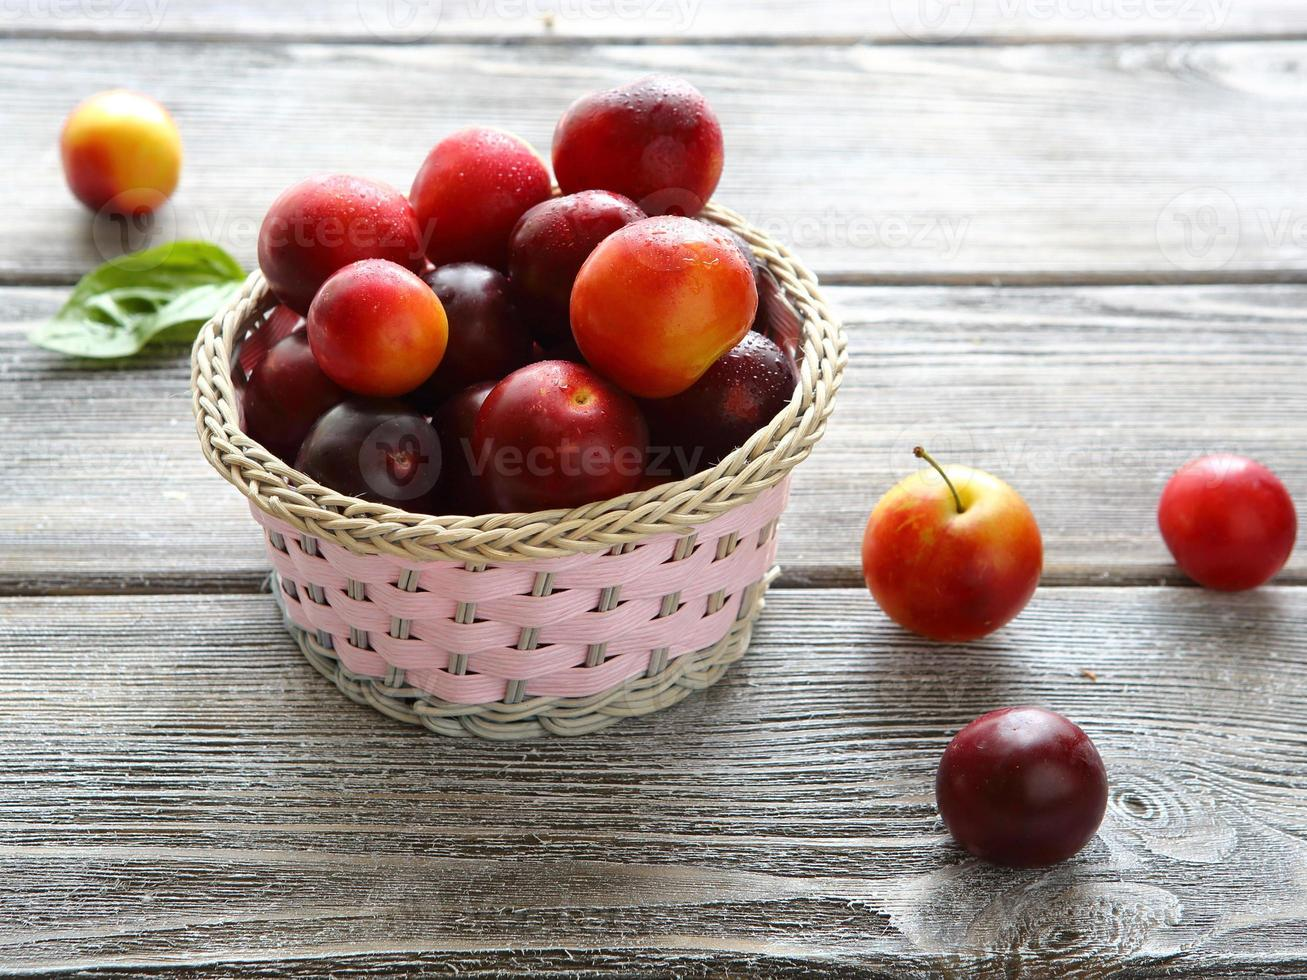 full basket of summer plums photo